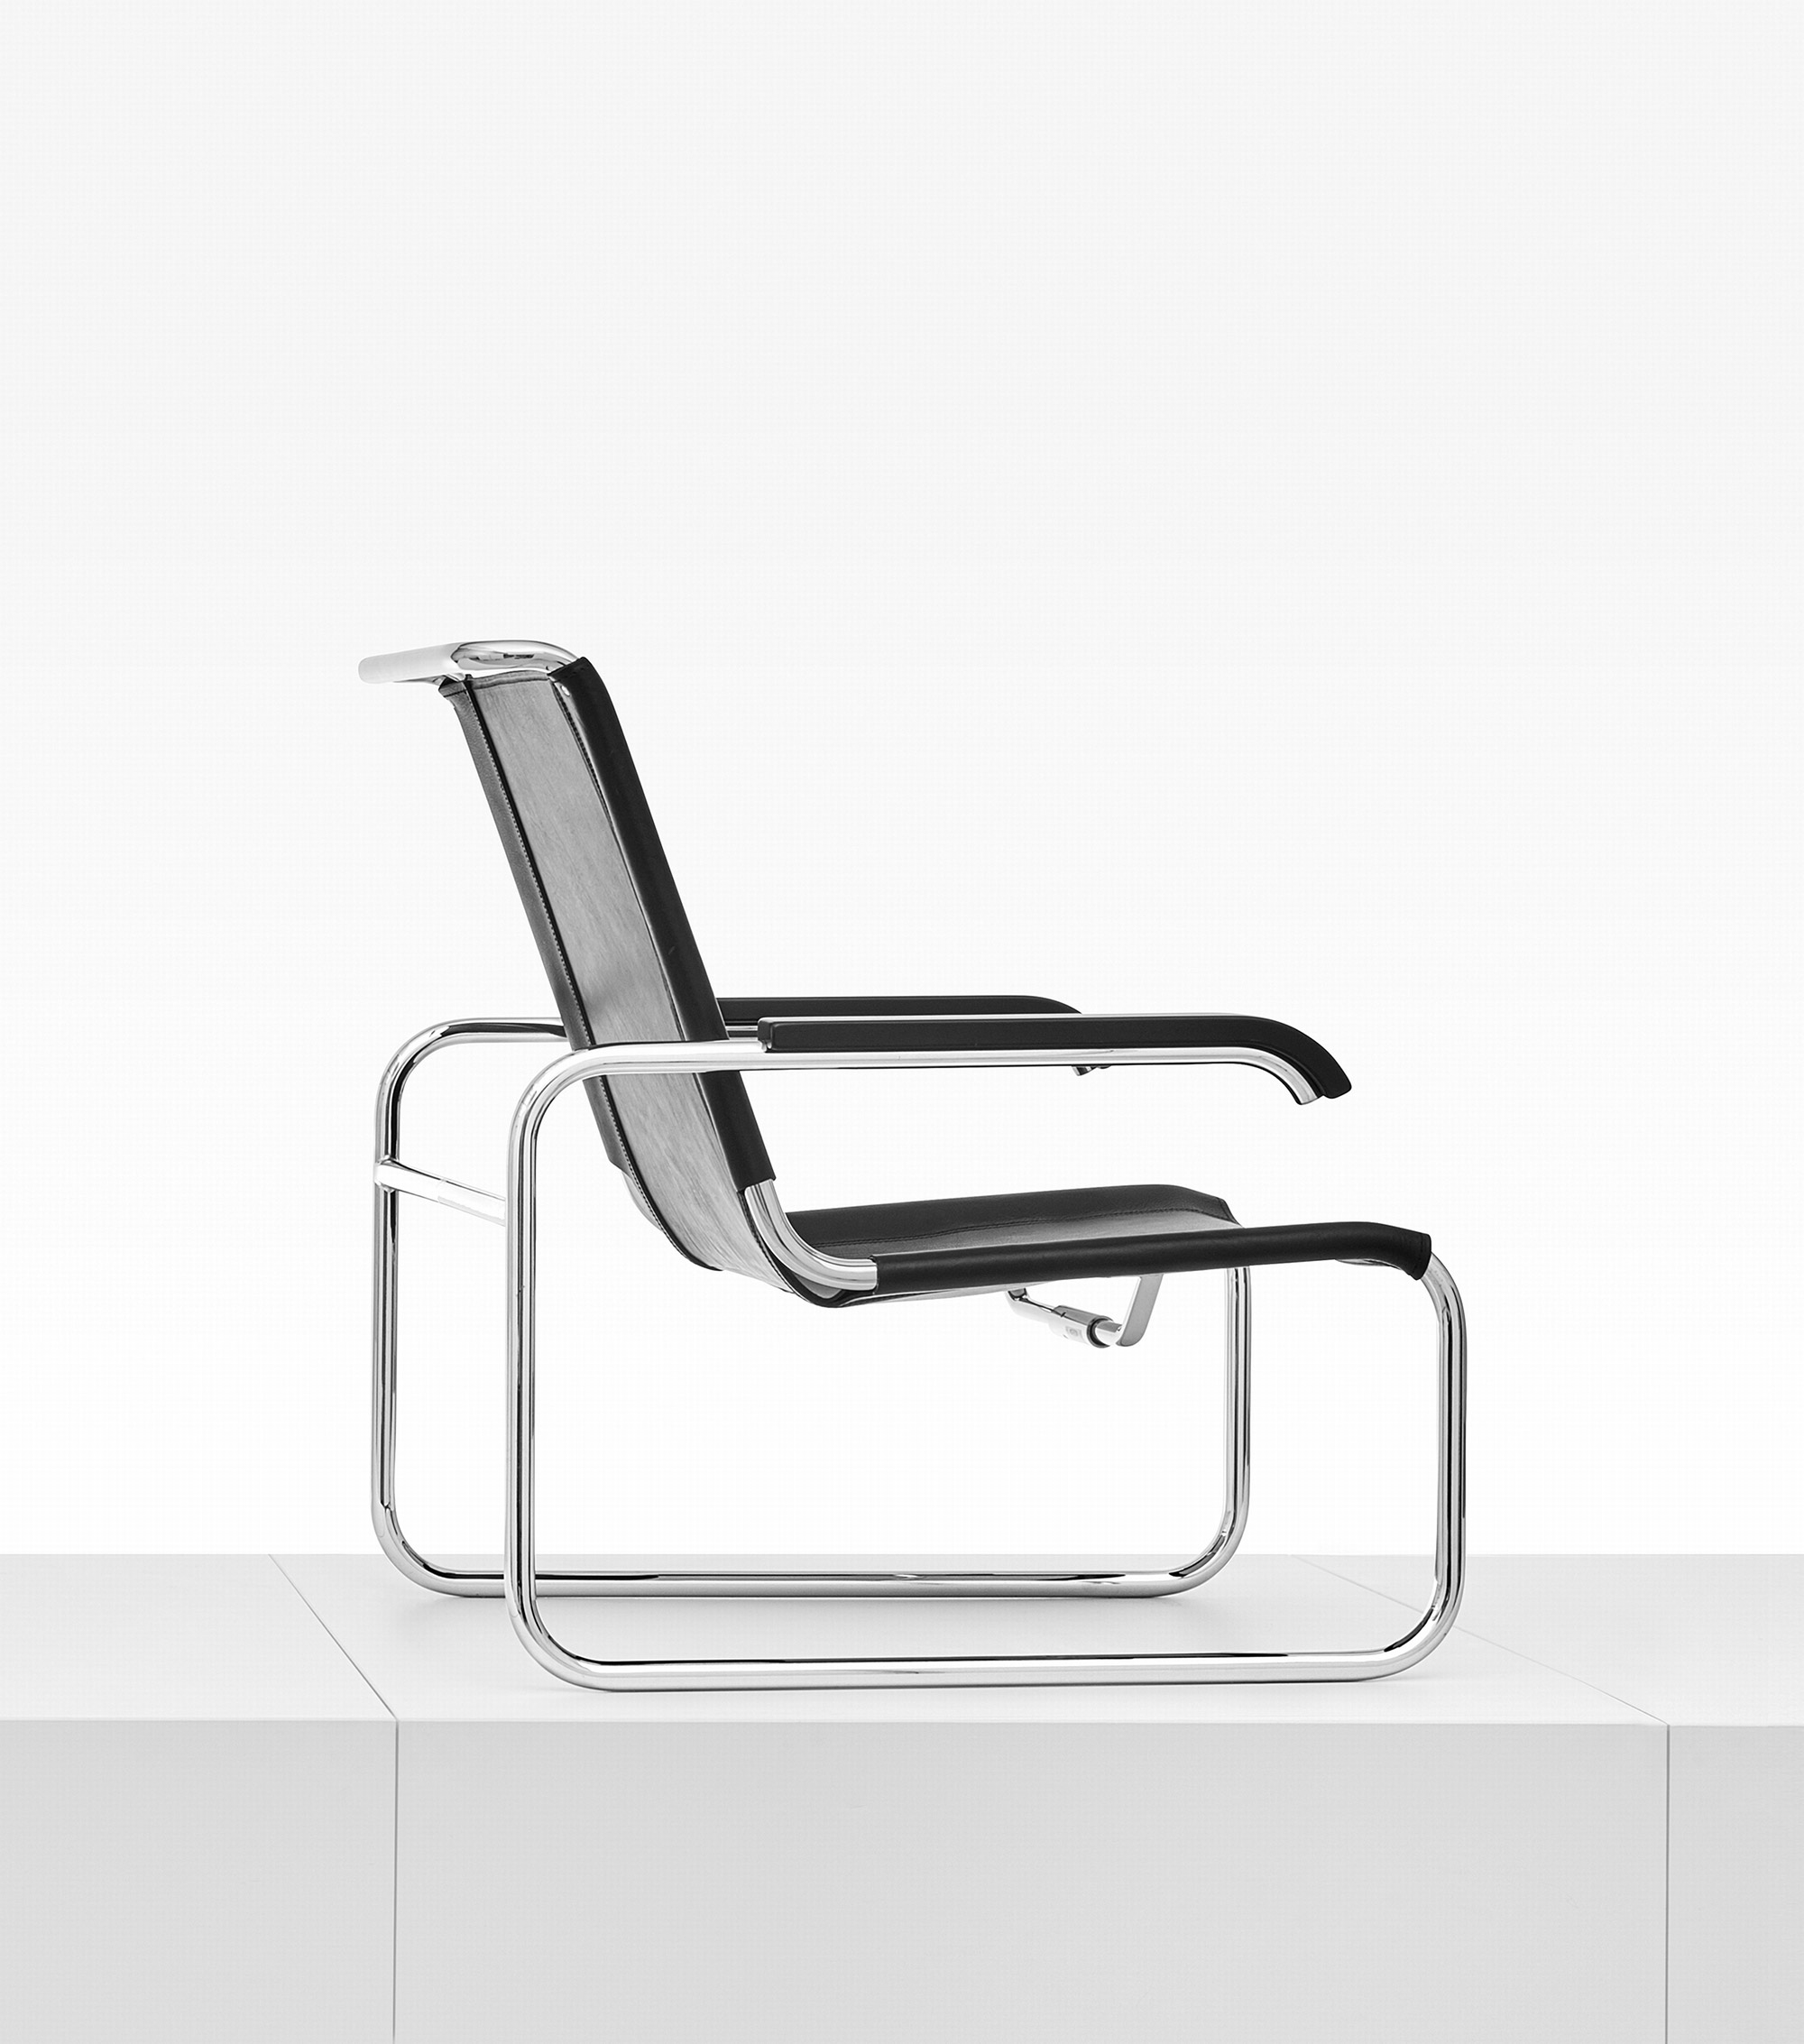 S35 chair by Thonet